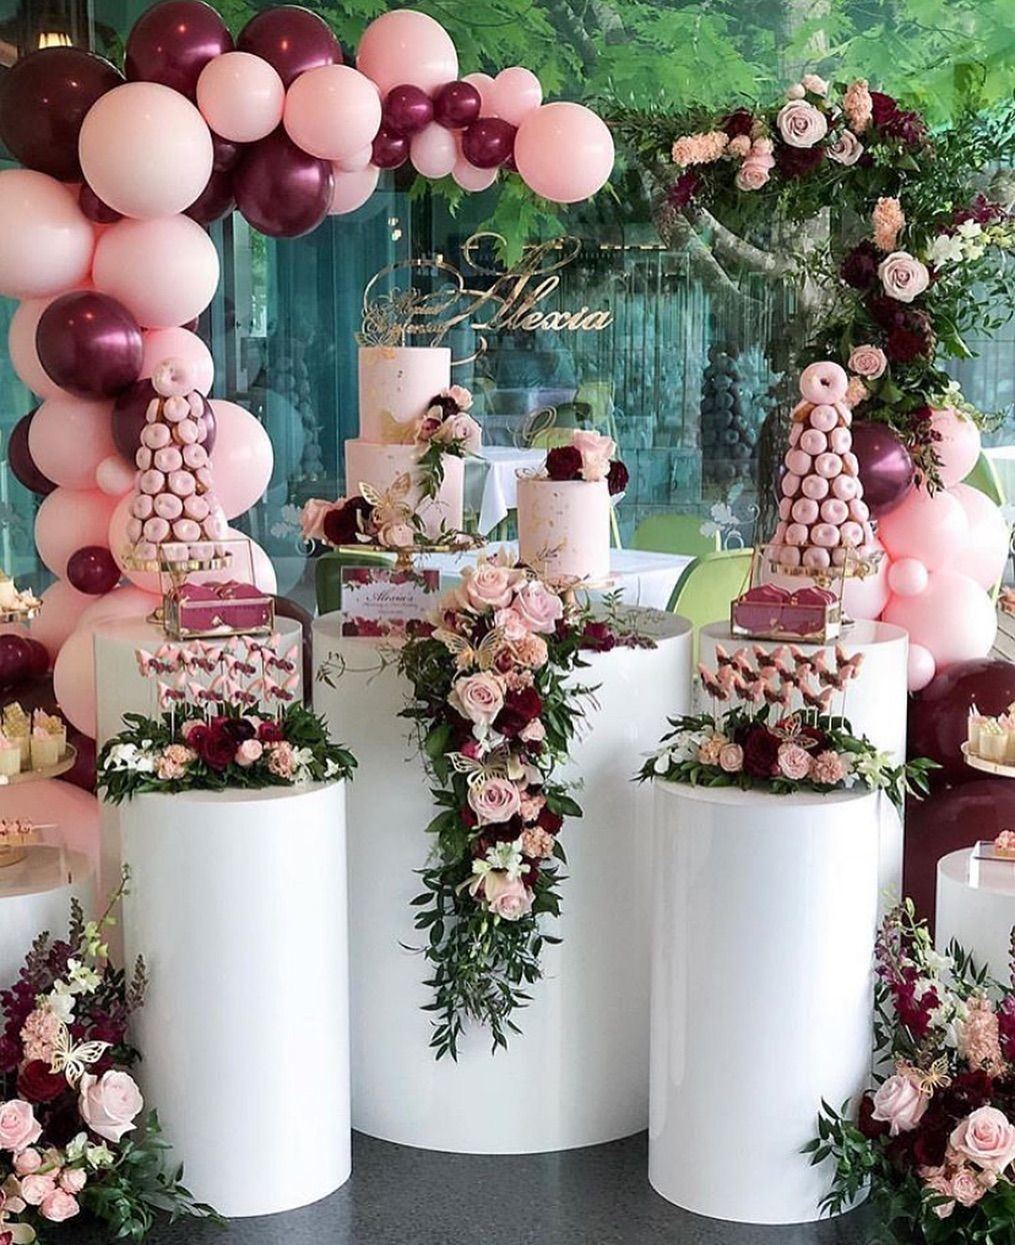 Plan Your Party With Us On Instagram Beautiful Butterfly Inspired Candy Bar Ball Birthday Party Decorations Birthday Table Decorations Birthday Decorations